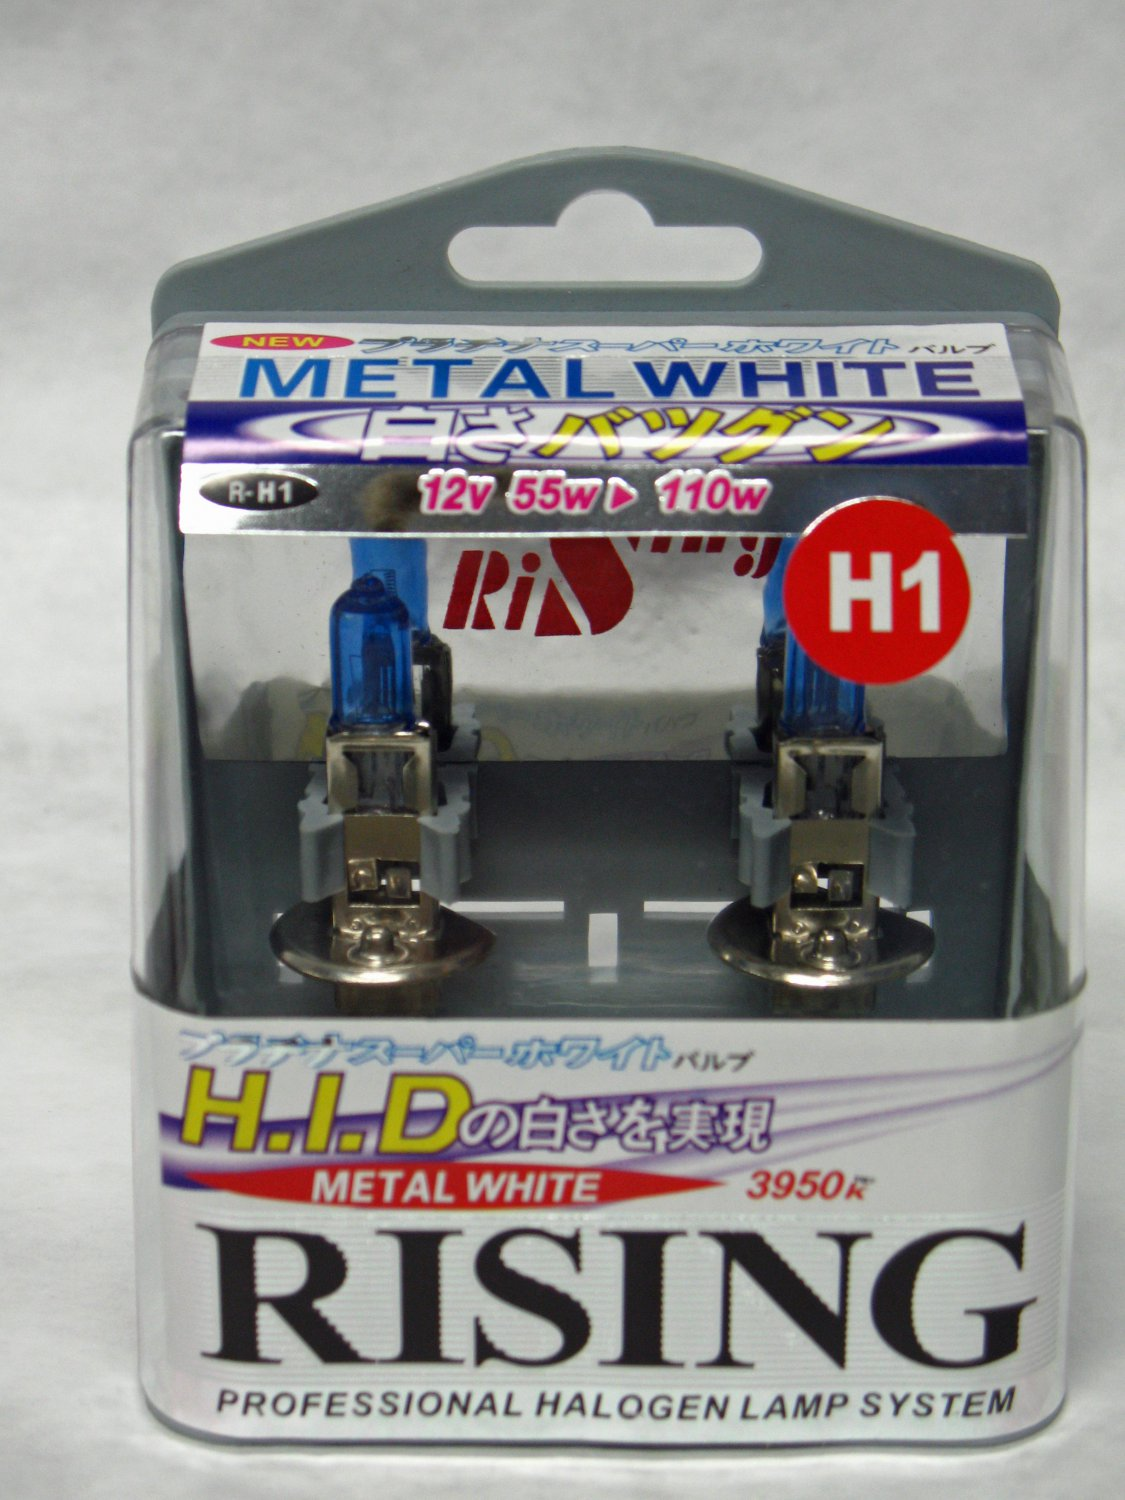 H1 Rising Super White 3950K 55W Halogen Replacement Light Bulb Set of 2 from Japan